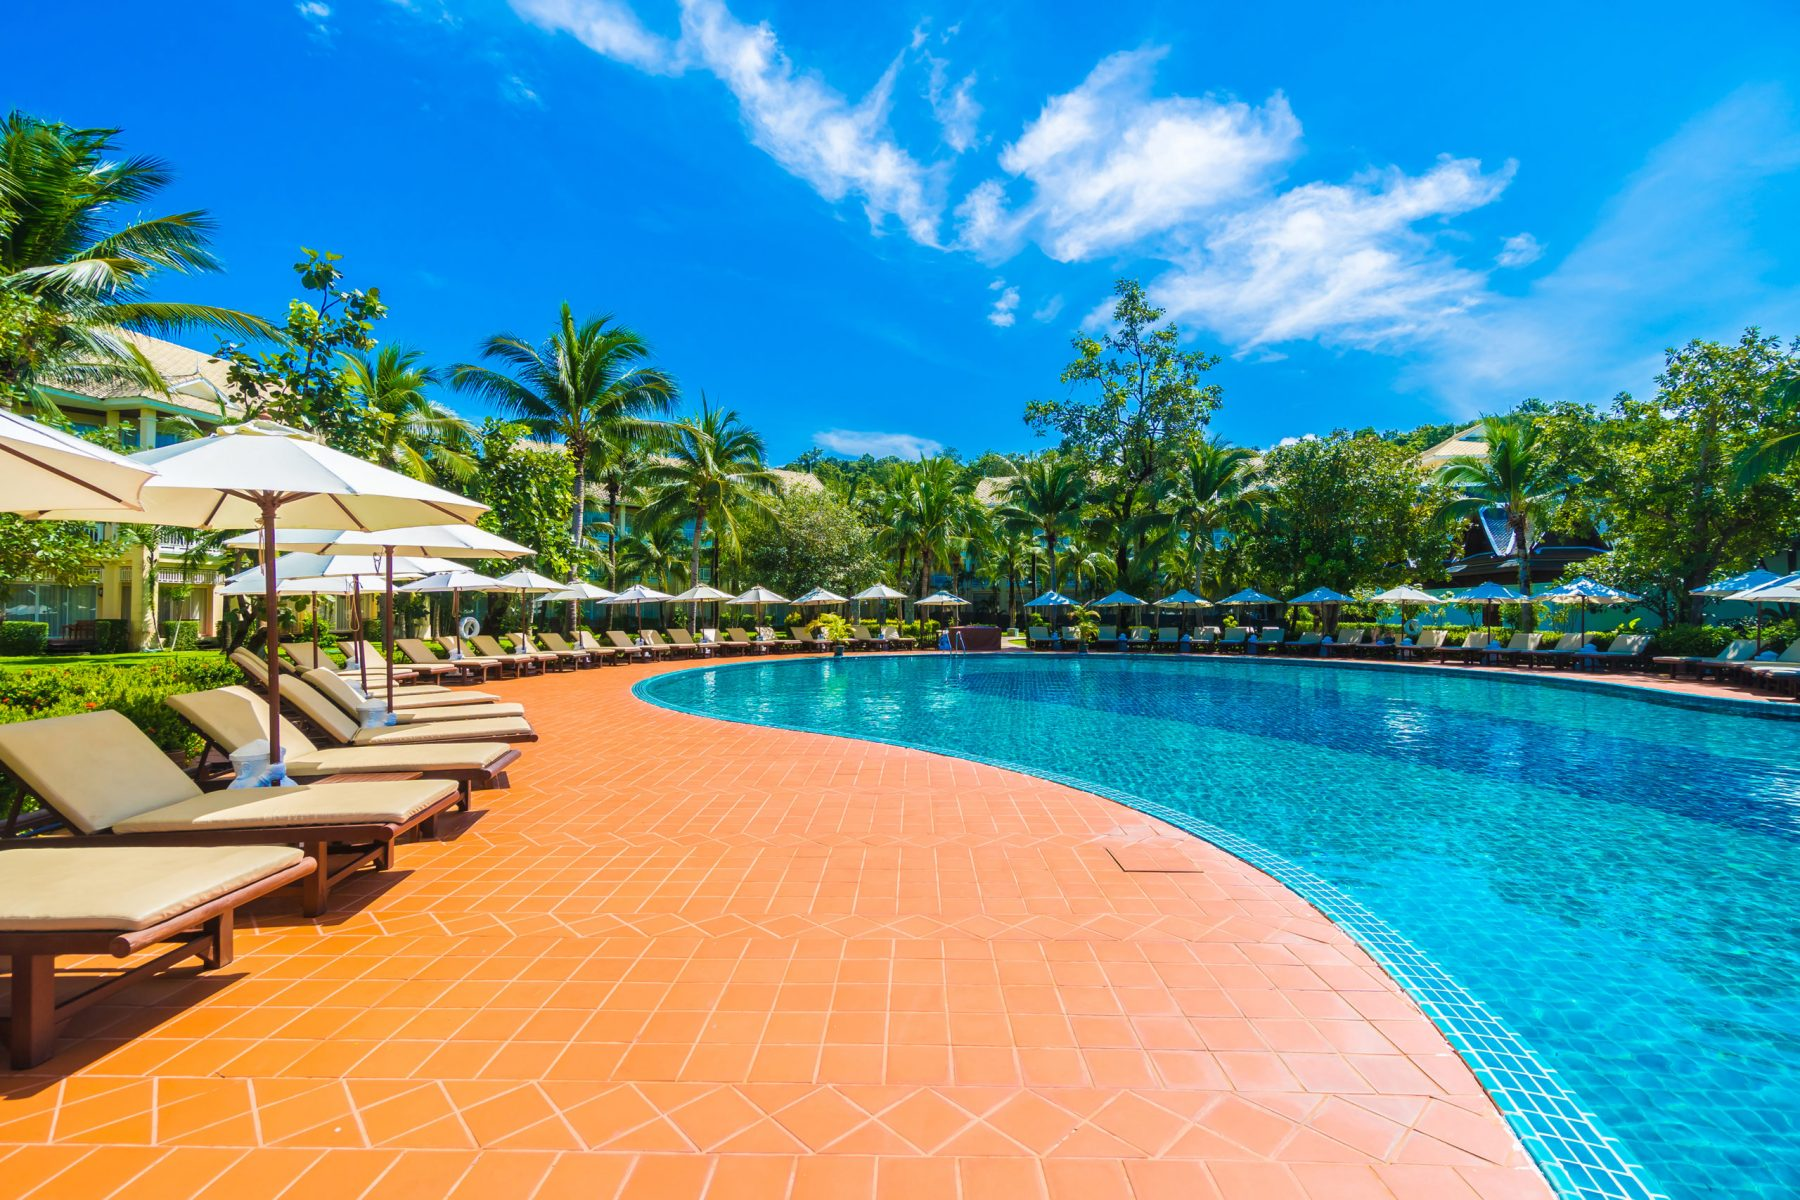 Beautiful luxury umbrella and chair around outdoor swimming pool in hotel and resort with coconut palm tree on blue sky - Boost up color Processing